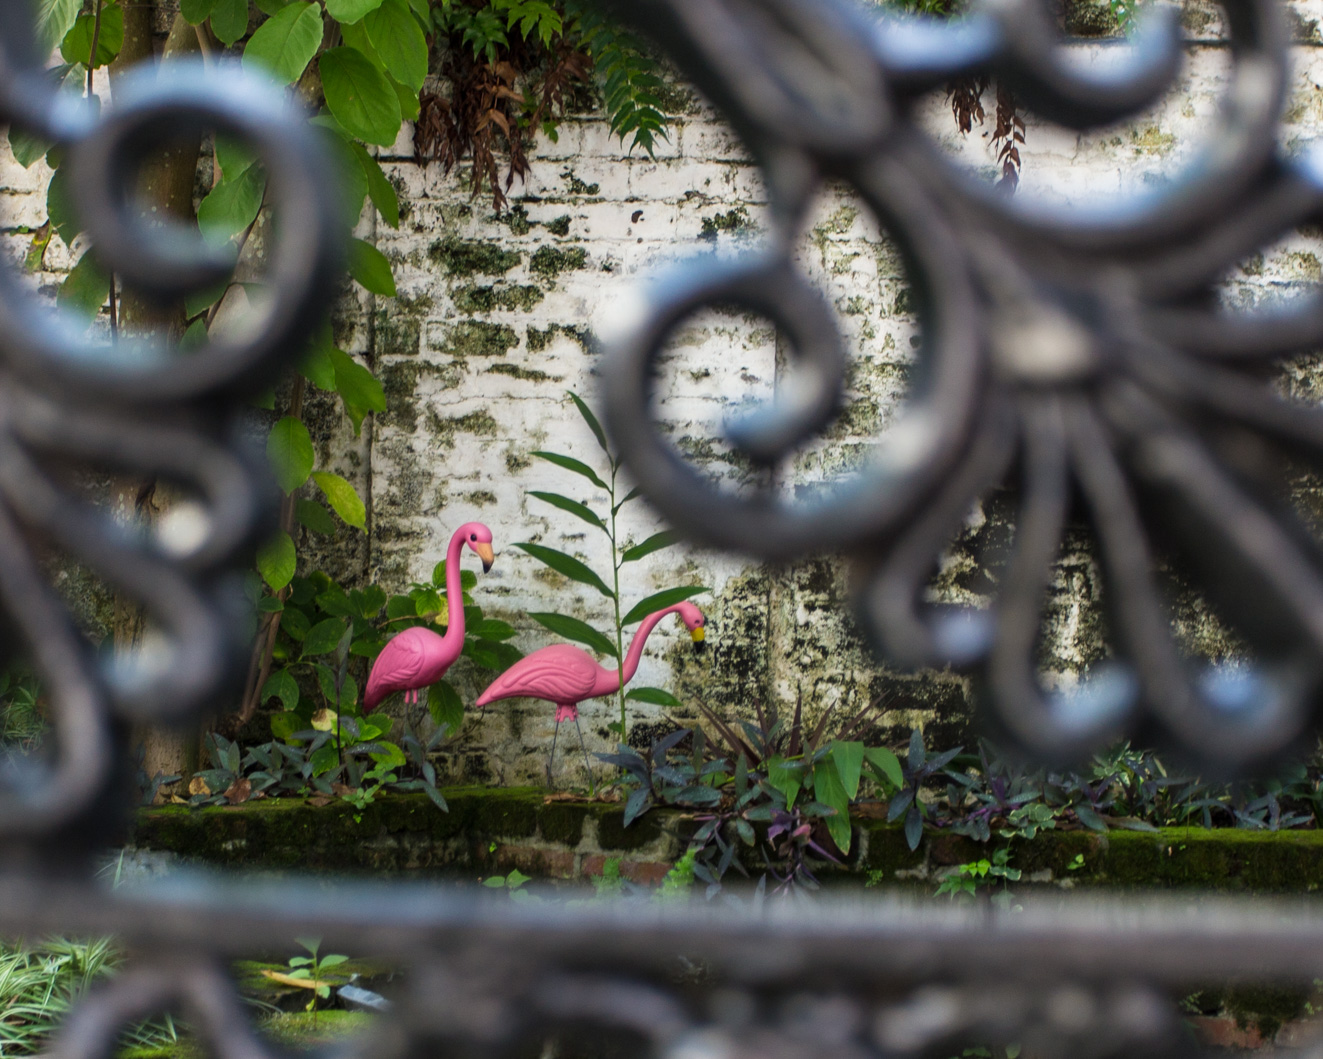 flamingo_garden (1 of 1).jpg